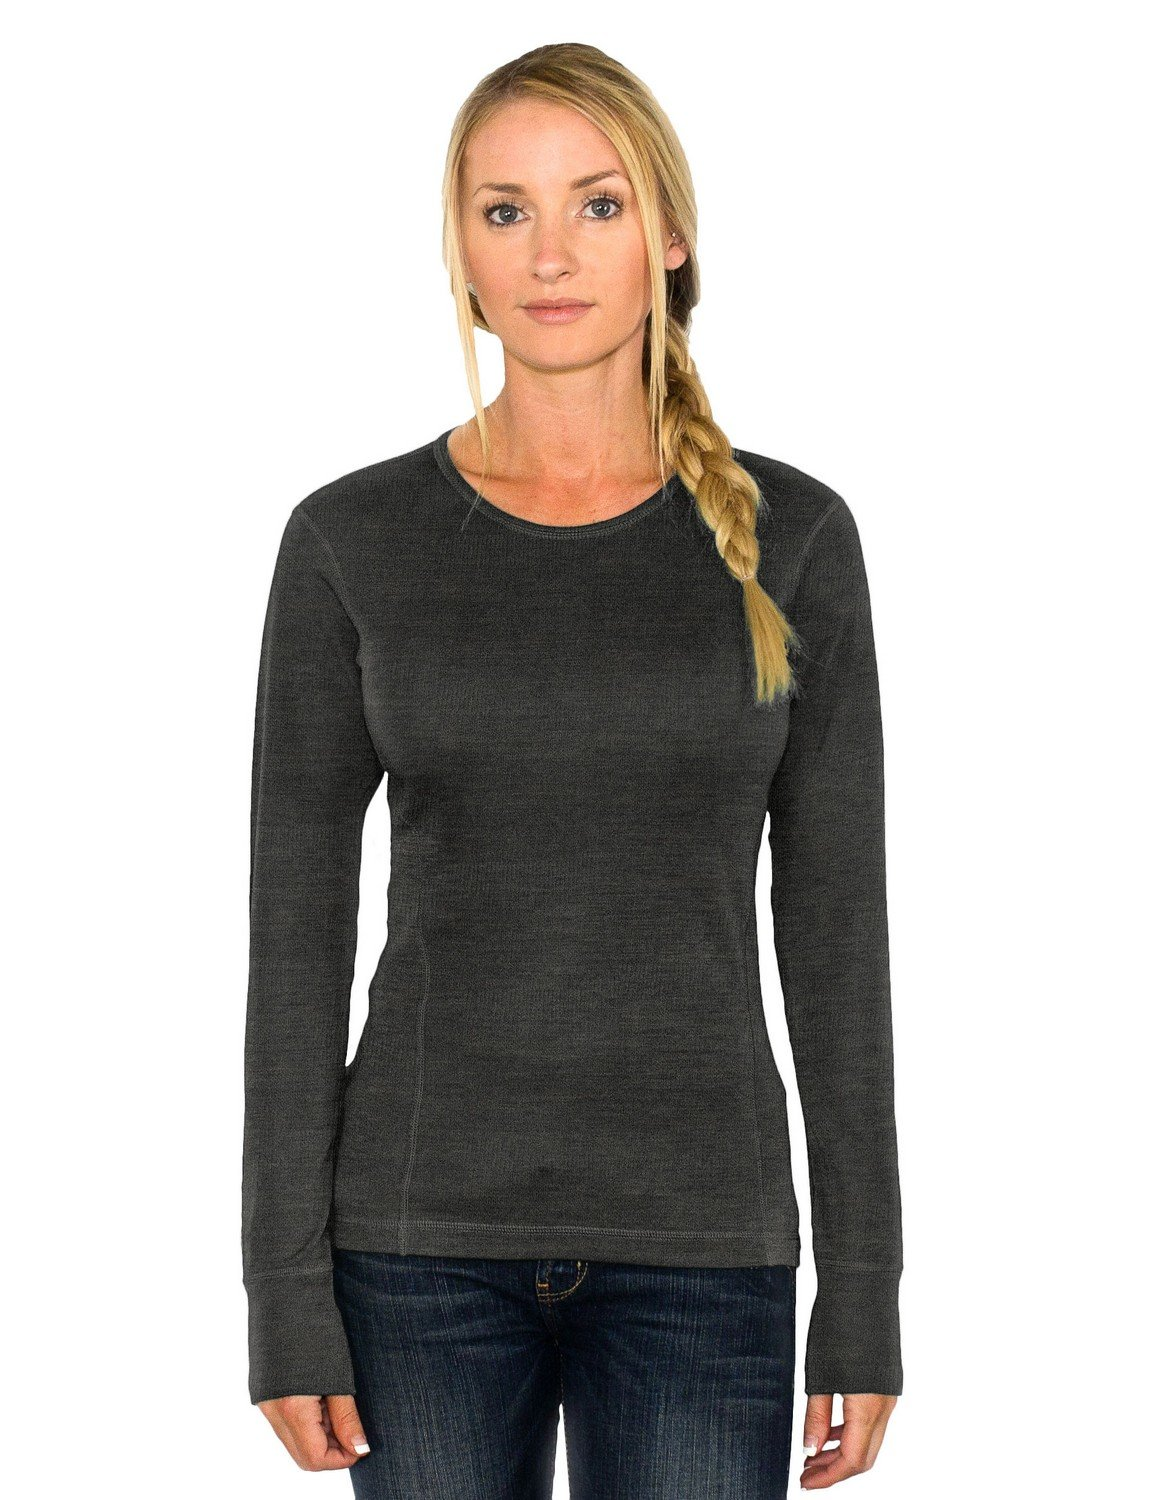 WoolX Hannah - Women's Merino Wool Top - Midweight, Moisture Wicking Merino Wool Base Layer, Large, Charcoal Heather